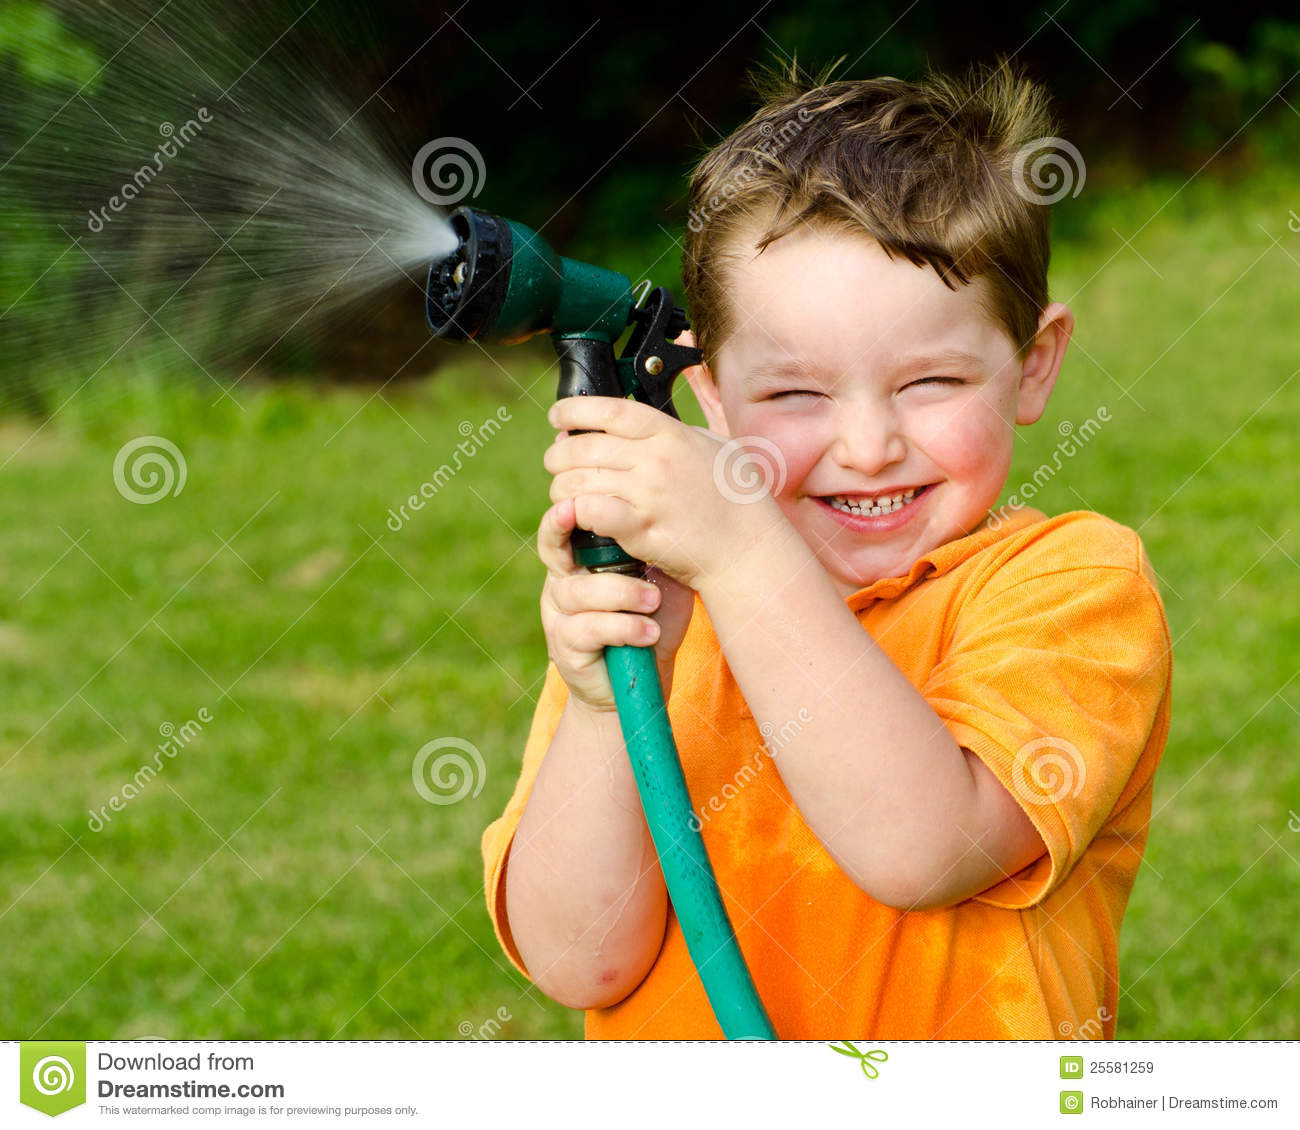 Child plays with water hose outdoors